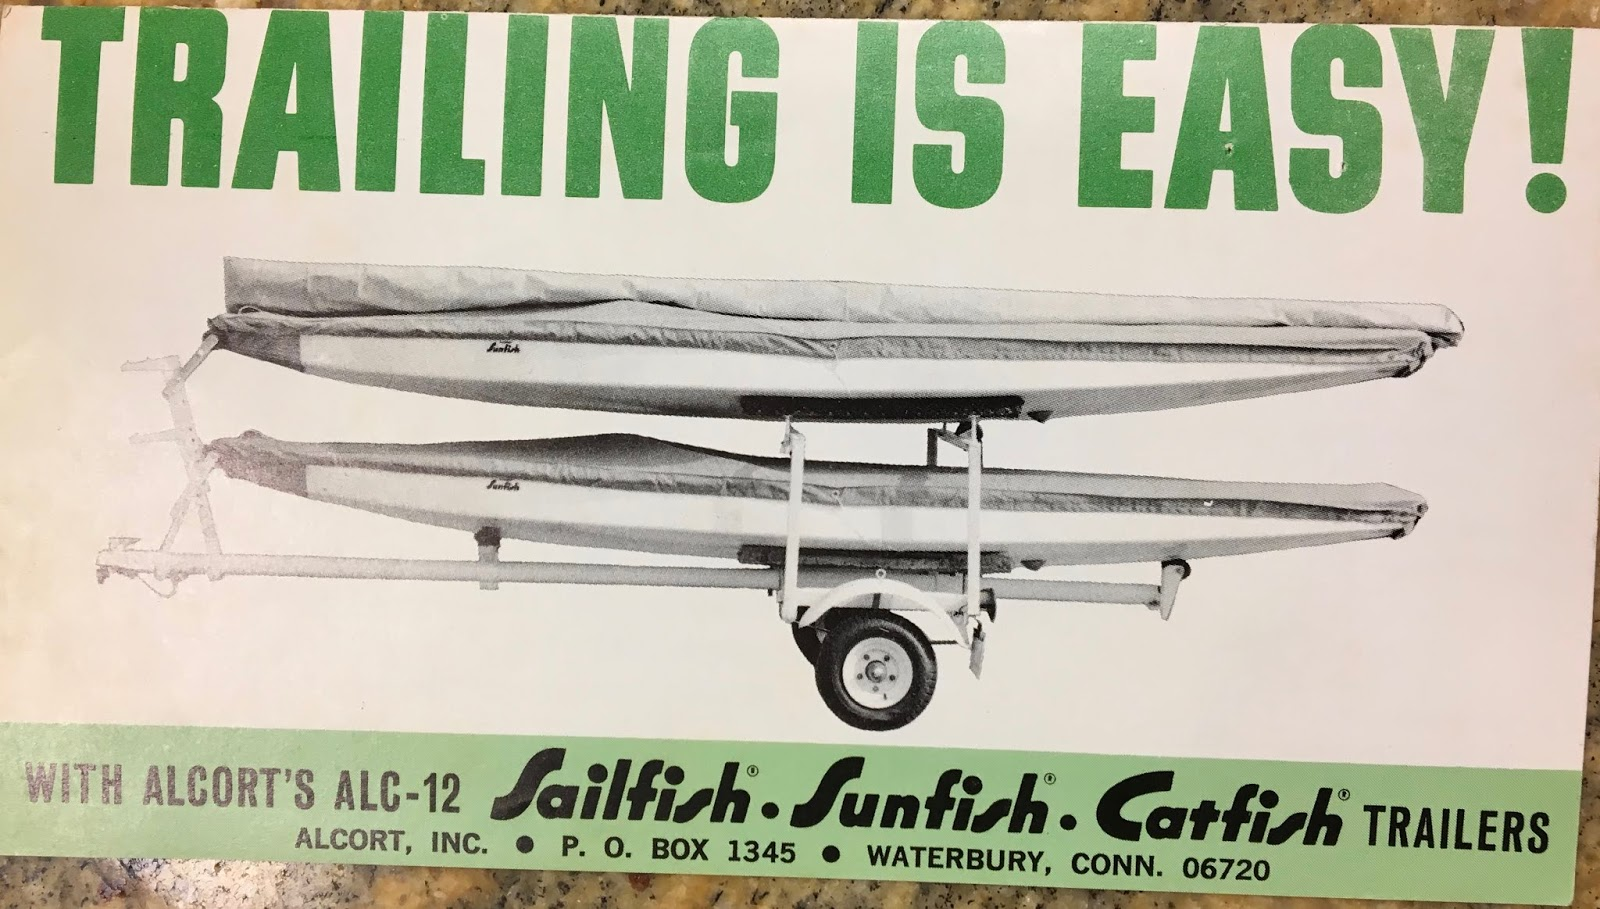 2014 Racing Sunfish — For Sale — Sailboat Guide